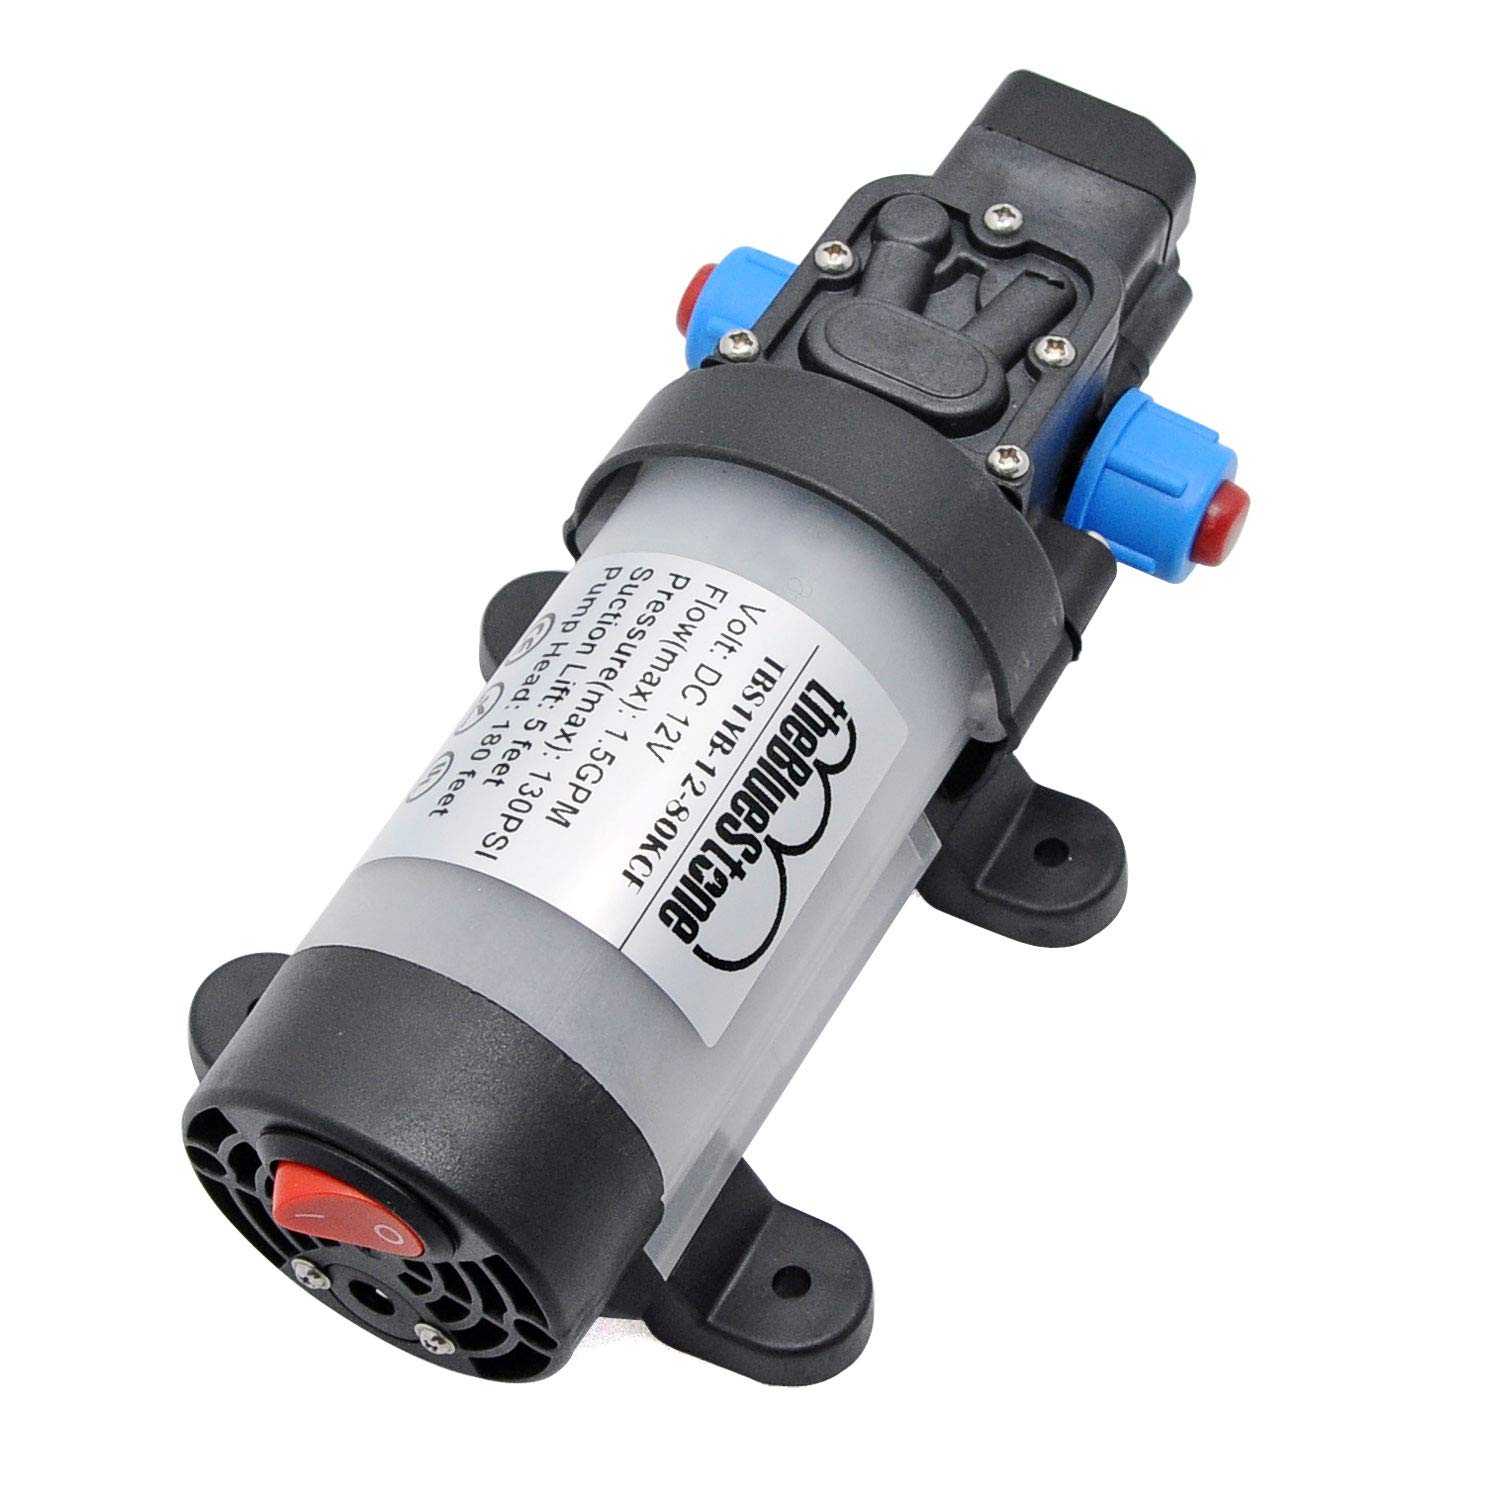 DC12V 115PSI Self-priming Bypass Diaphragm Water Pump 1.3 GPM for Agricultural Irrigation Sprayer Sprinkler System Fluid Transfer Pressure Cleaning